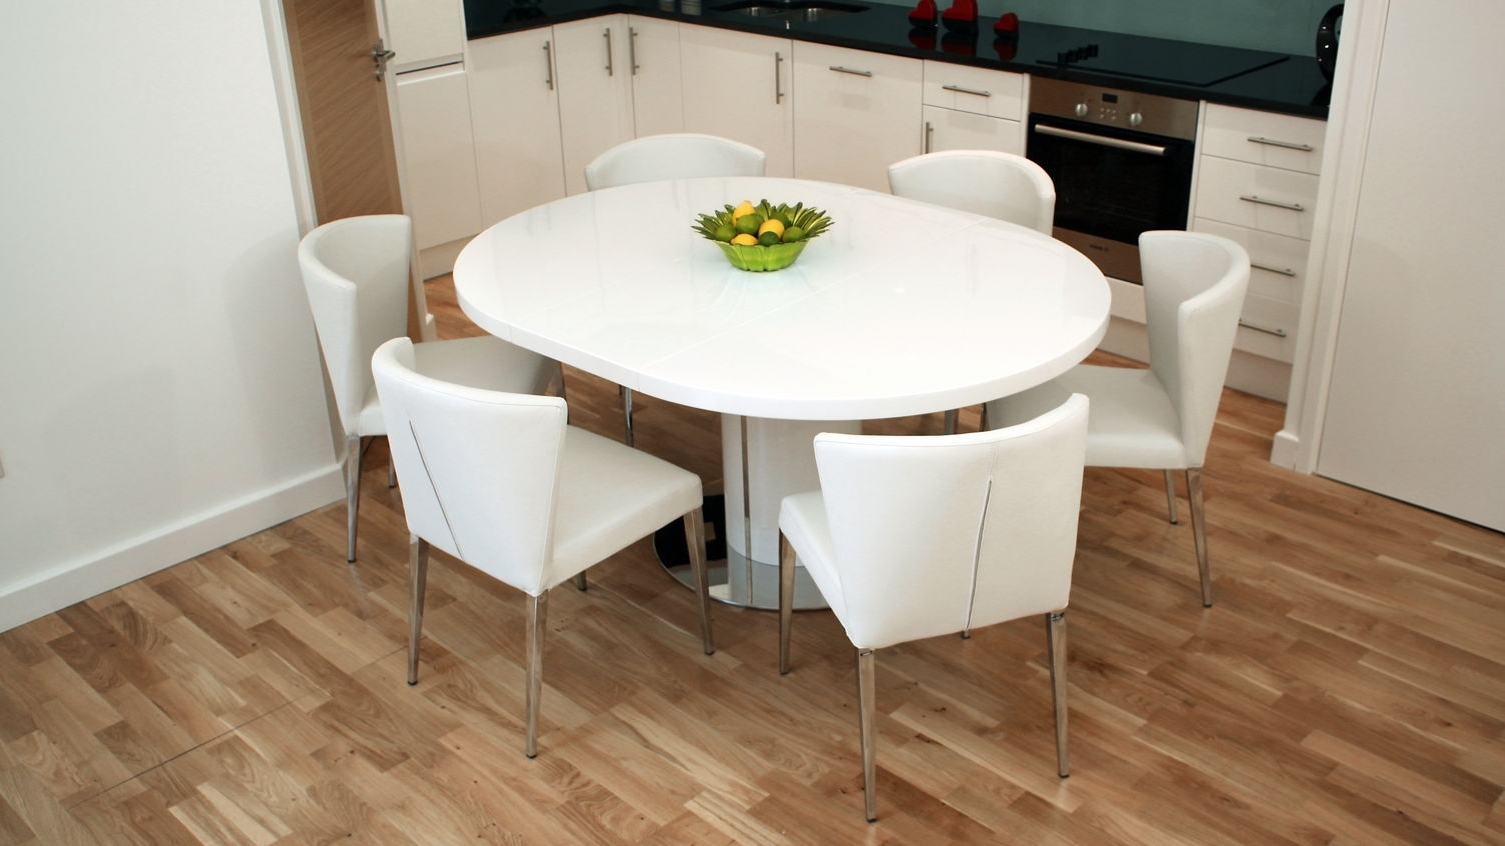 2018 Dining Tables: Interesting Small Round Extending Dining Table Oak Intended For Small White Extending Dining Tables (View 1 of 25)